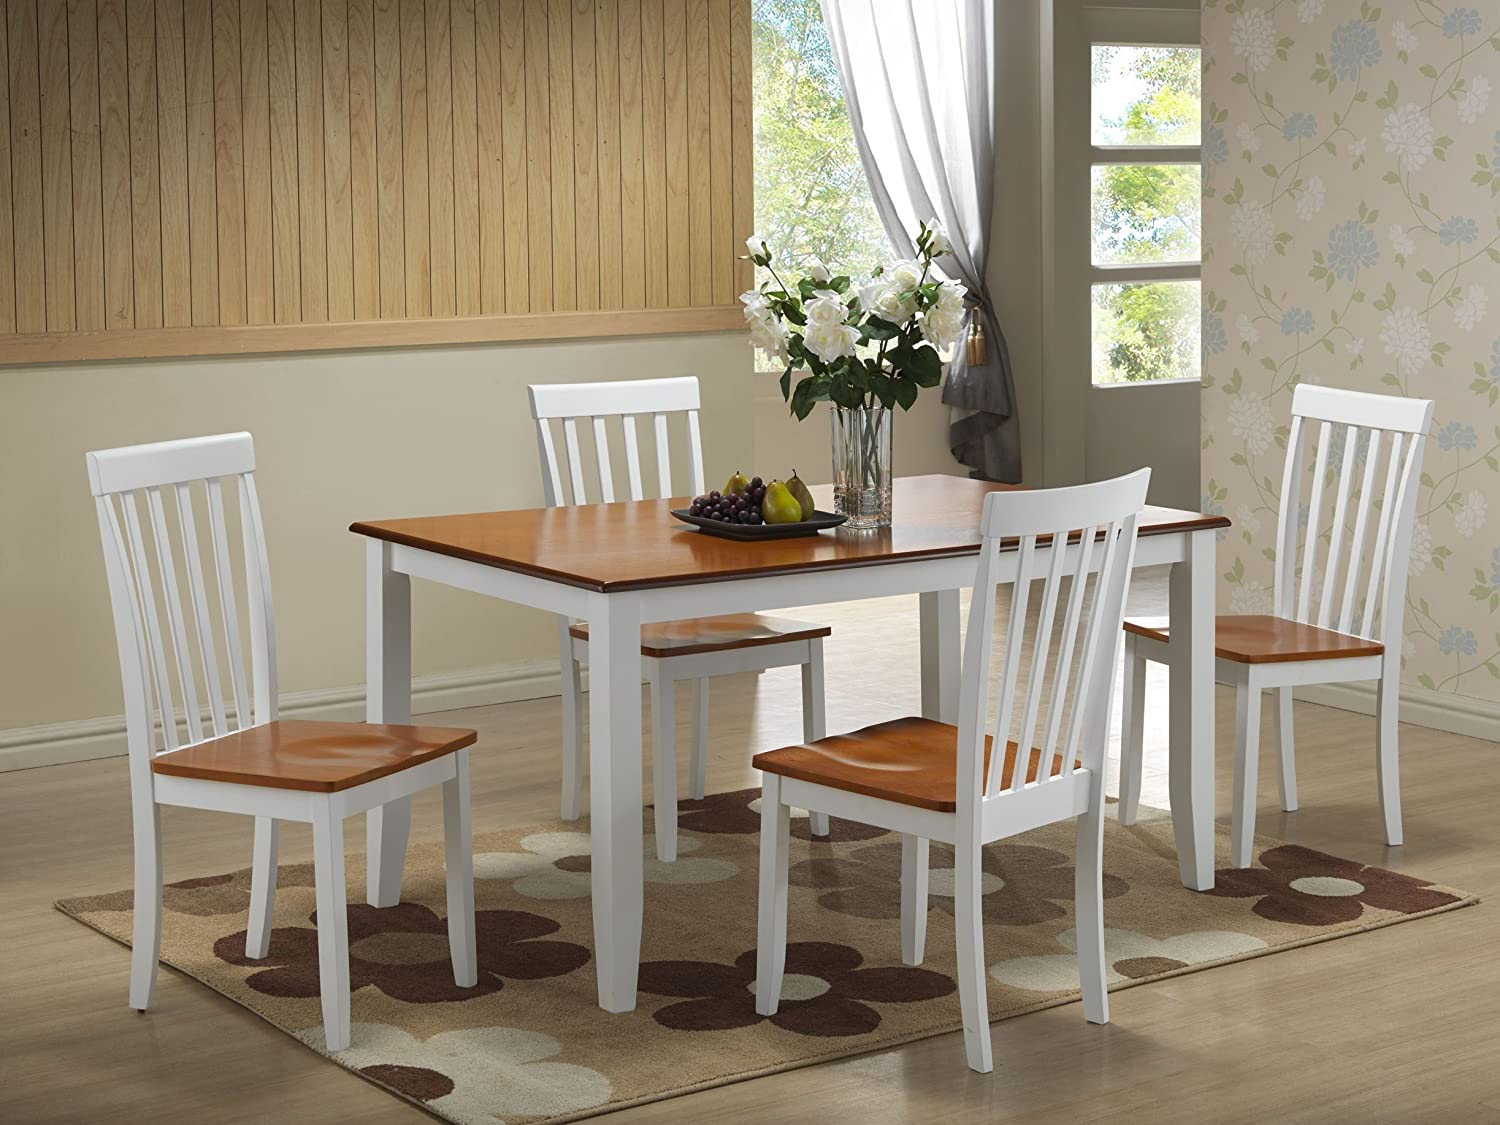 Amazon.com - Boraam 22033 Bloomington 5-Piece Dining Set, White ...